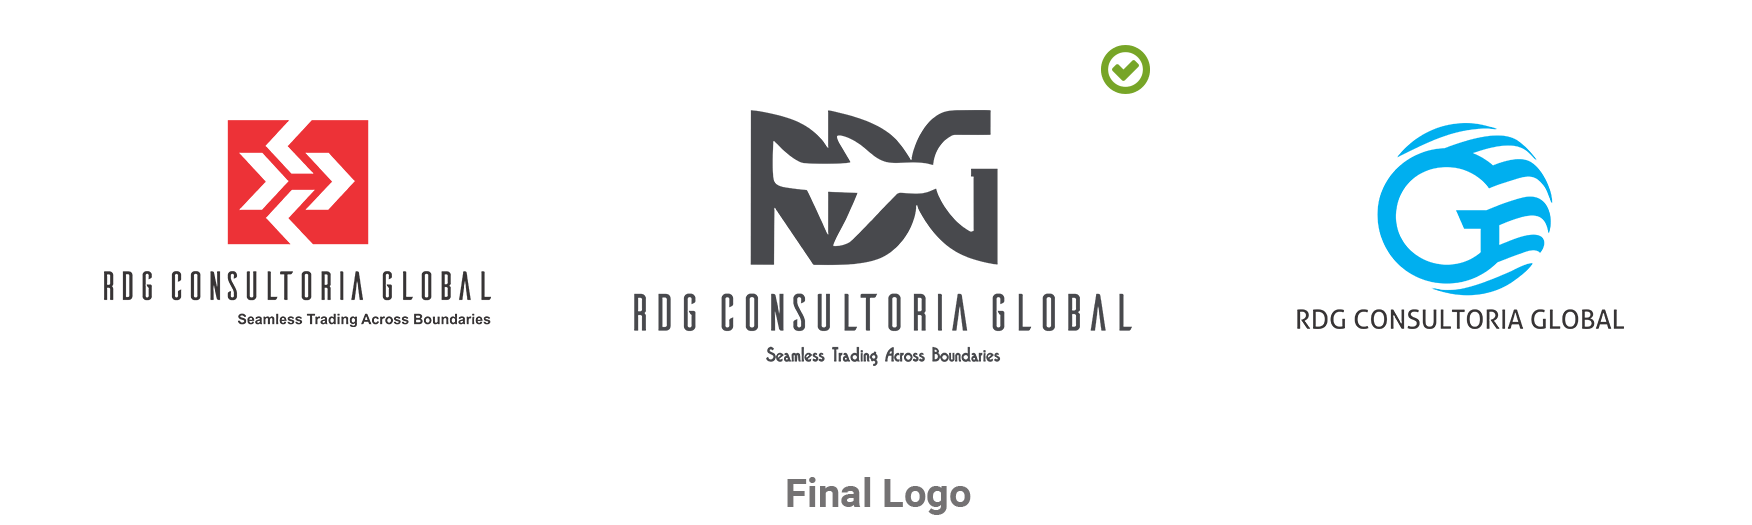 RDG Logo Design Concepts